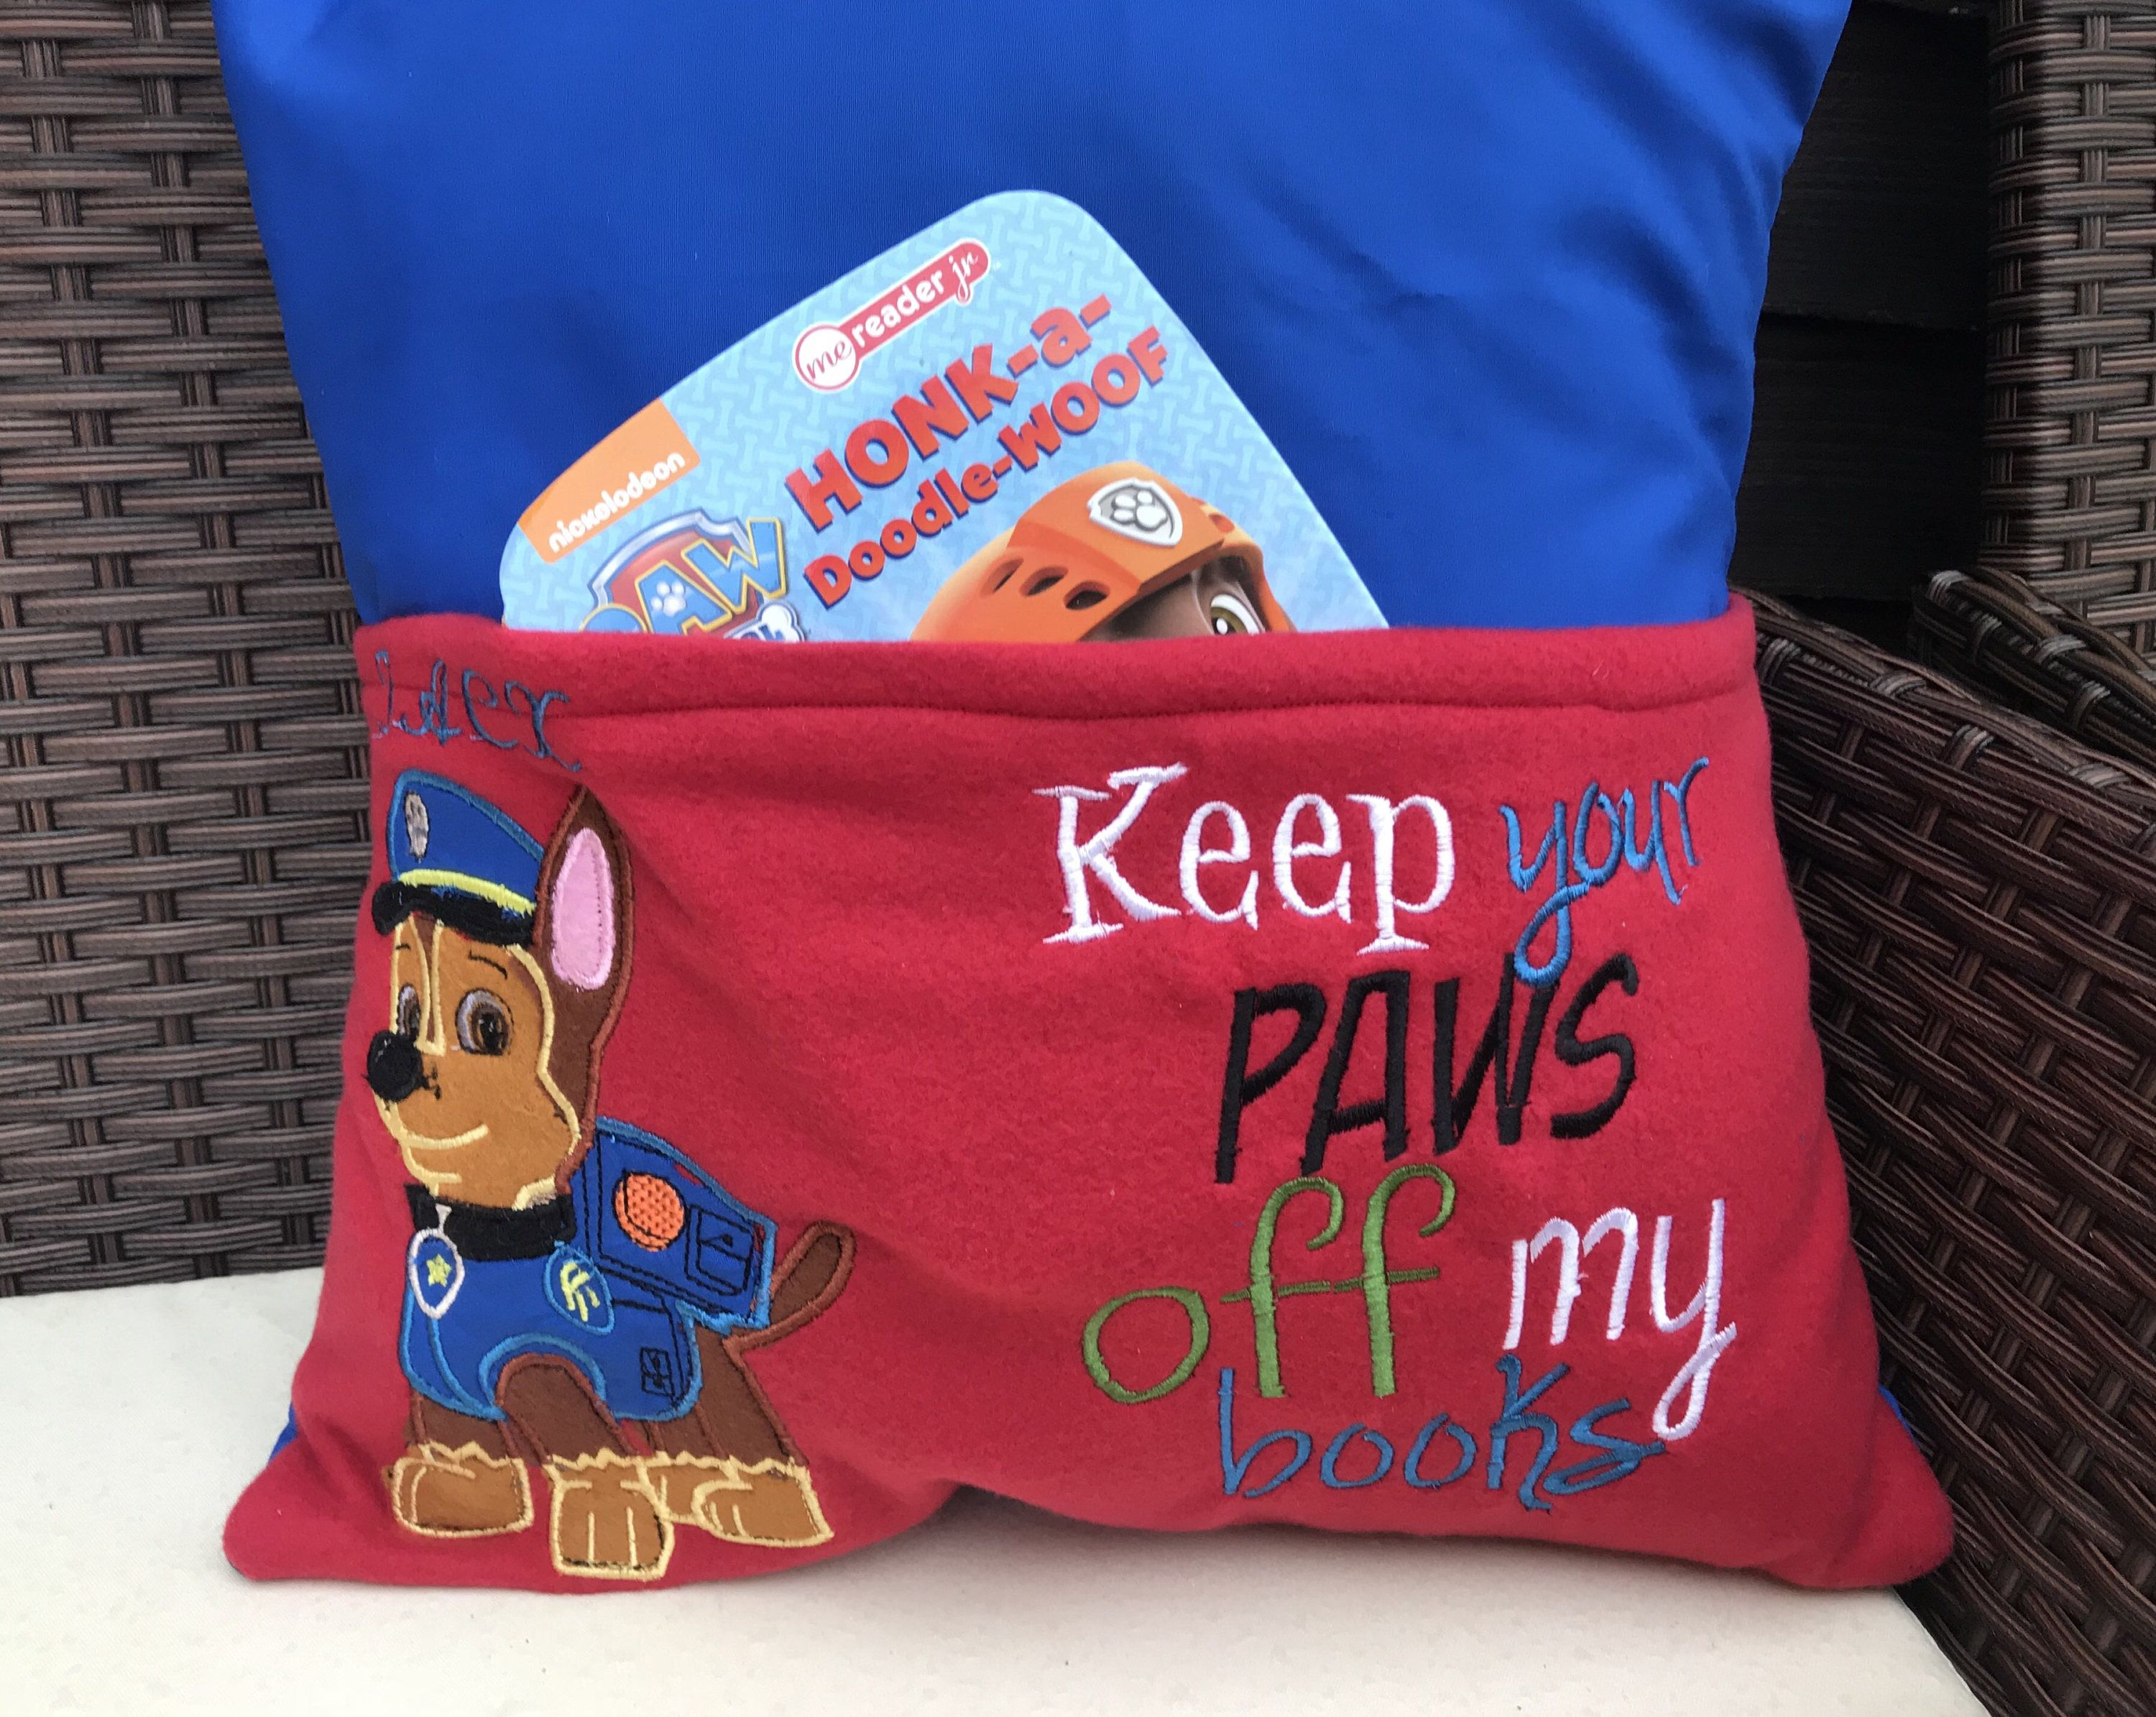 Personalised reading book pillow Paw patrol design, book cushion, gift for children, cartoon, pillow case, Chase - Book pillow, Personalized pillow case diy, Personalized pillow cases, Reading pillow, Kids pillow cases, Personalized pillows - Paw Patrol Chase Reading  book pillow  Personalised with a name, please leave details in the notes section at checkout  'Keep your paws off my books' Includes cover and cushion insert  Measures 16x16 inches